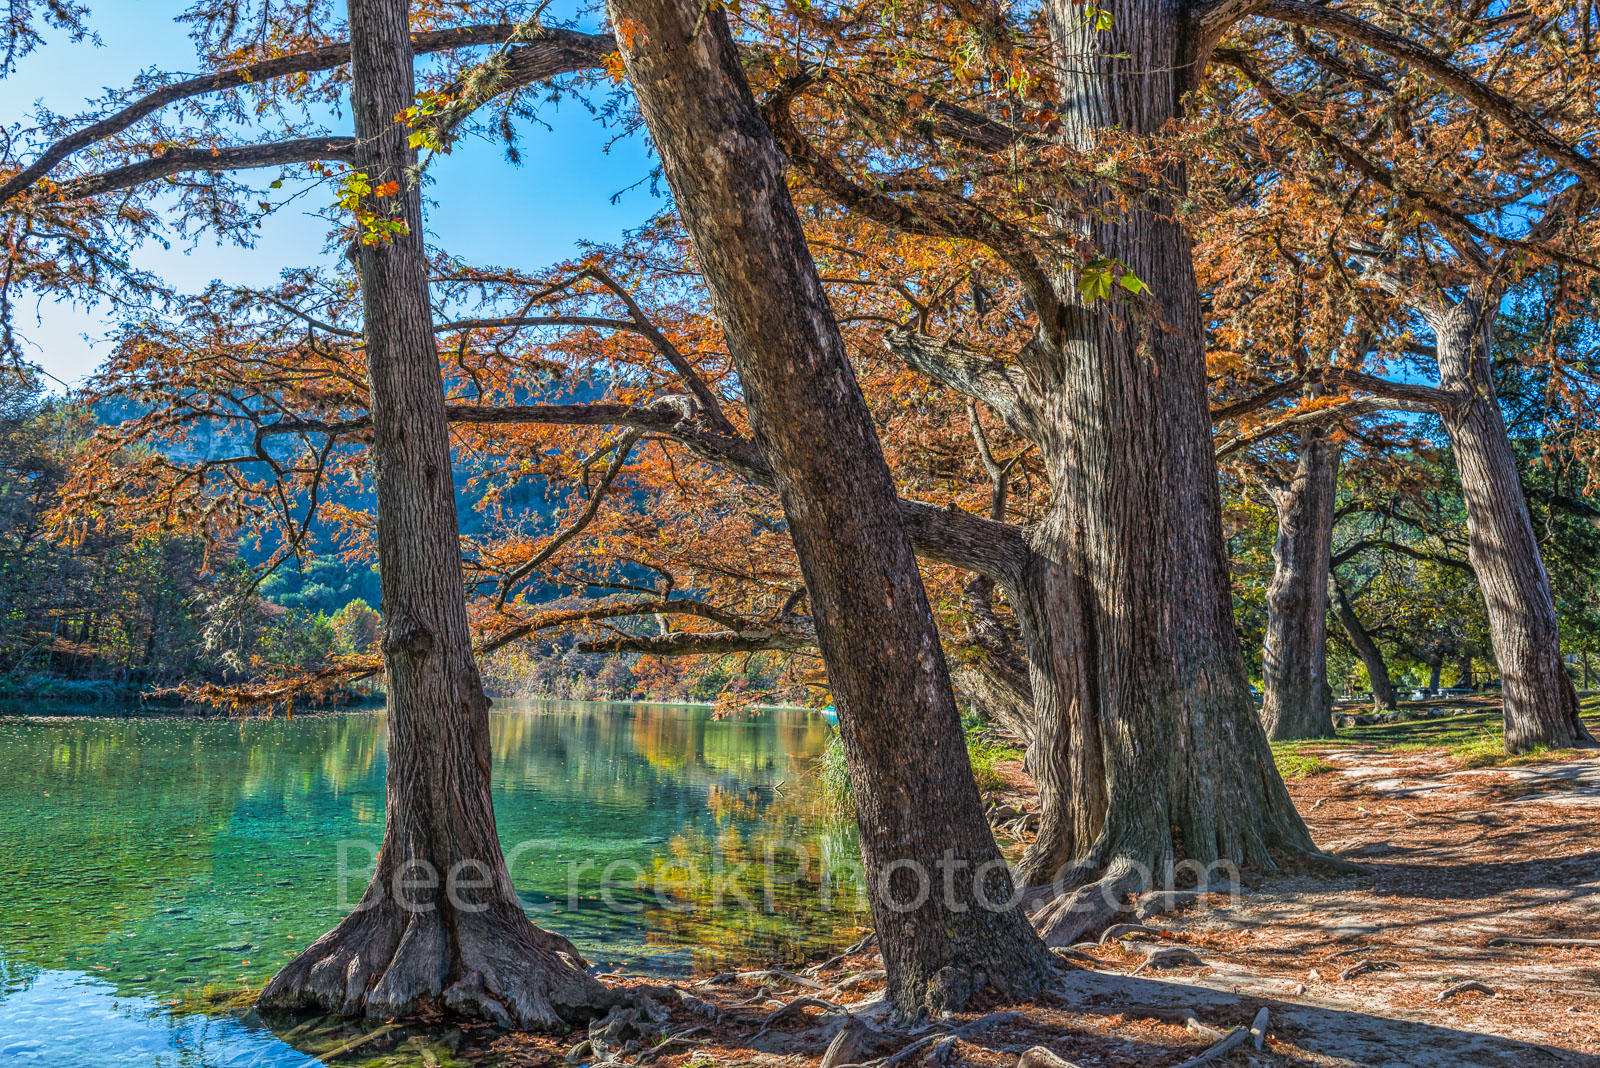 Garner State Park, Texas,, landscape, landscapes, Texas landscape, fall, frio river, rural landscape, blue water, clear water, blue green waters, fall cypress trees, colorful,, photo